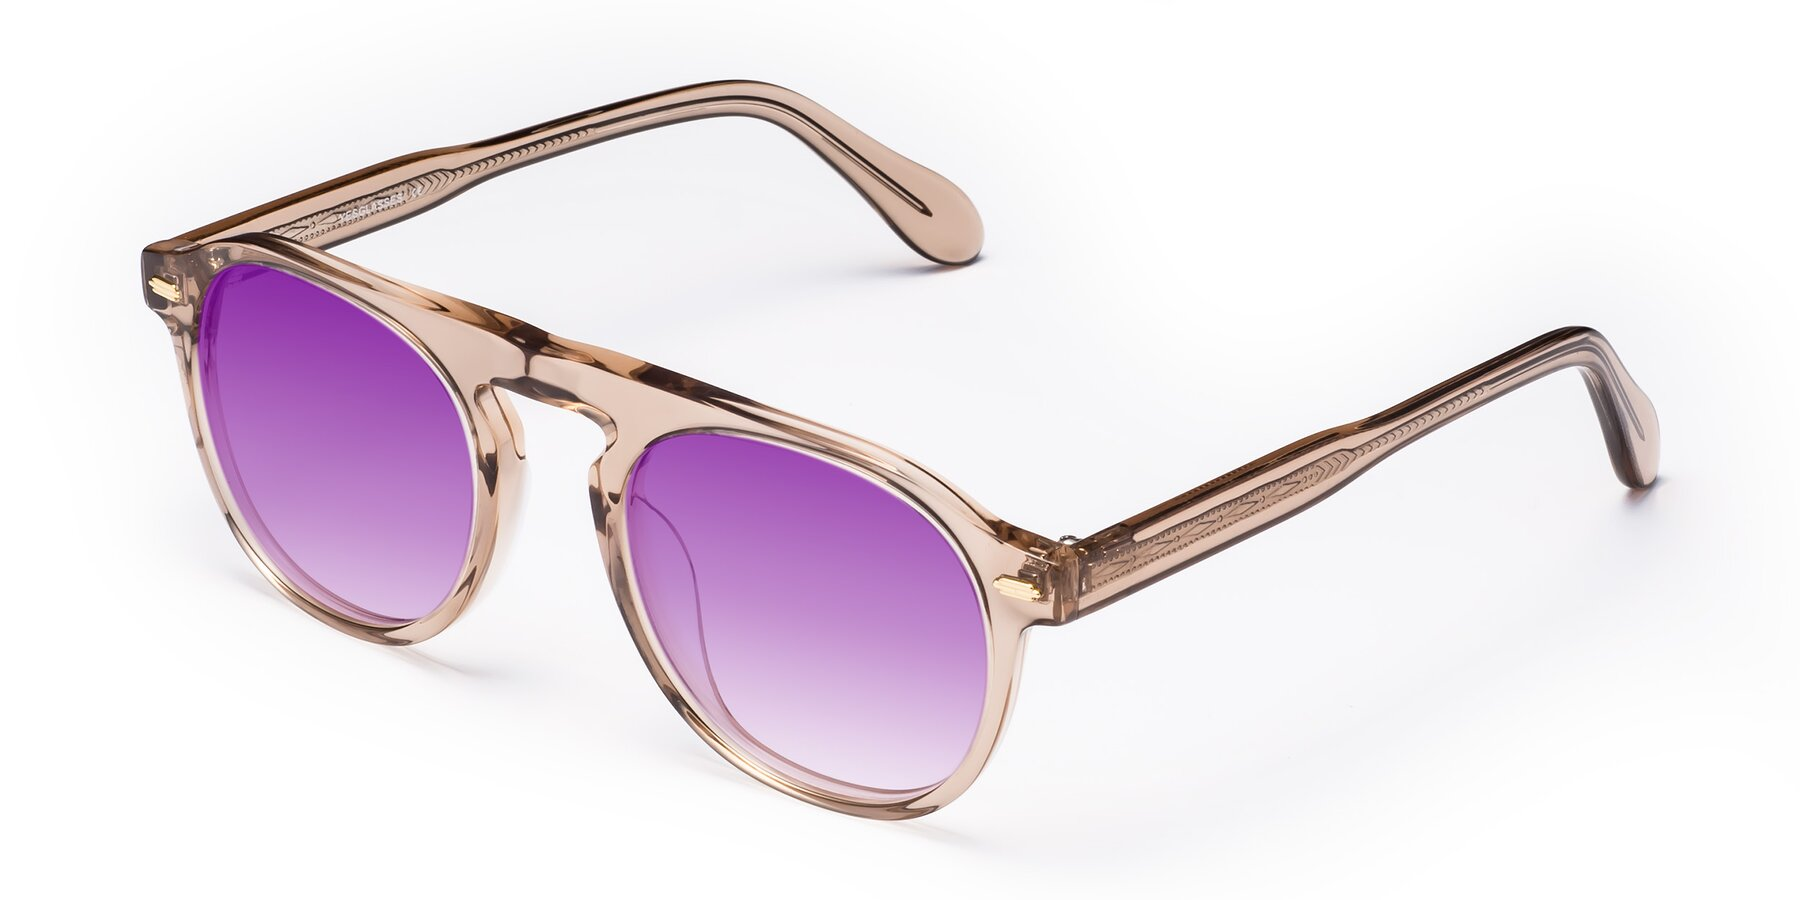 Angle of Mufasa in light Brown with Purple Gradient Lenses